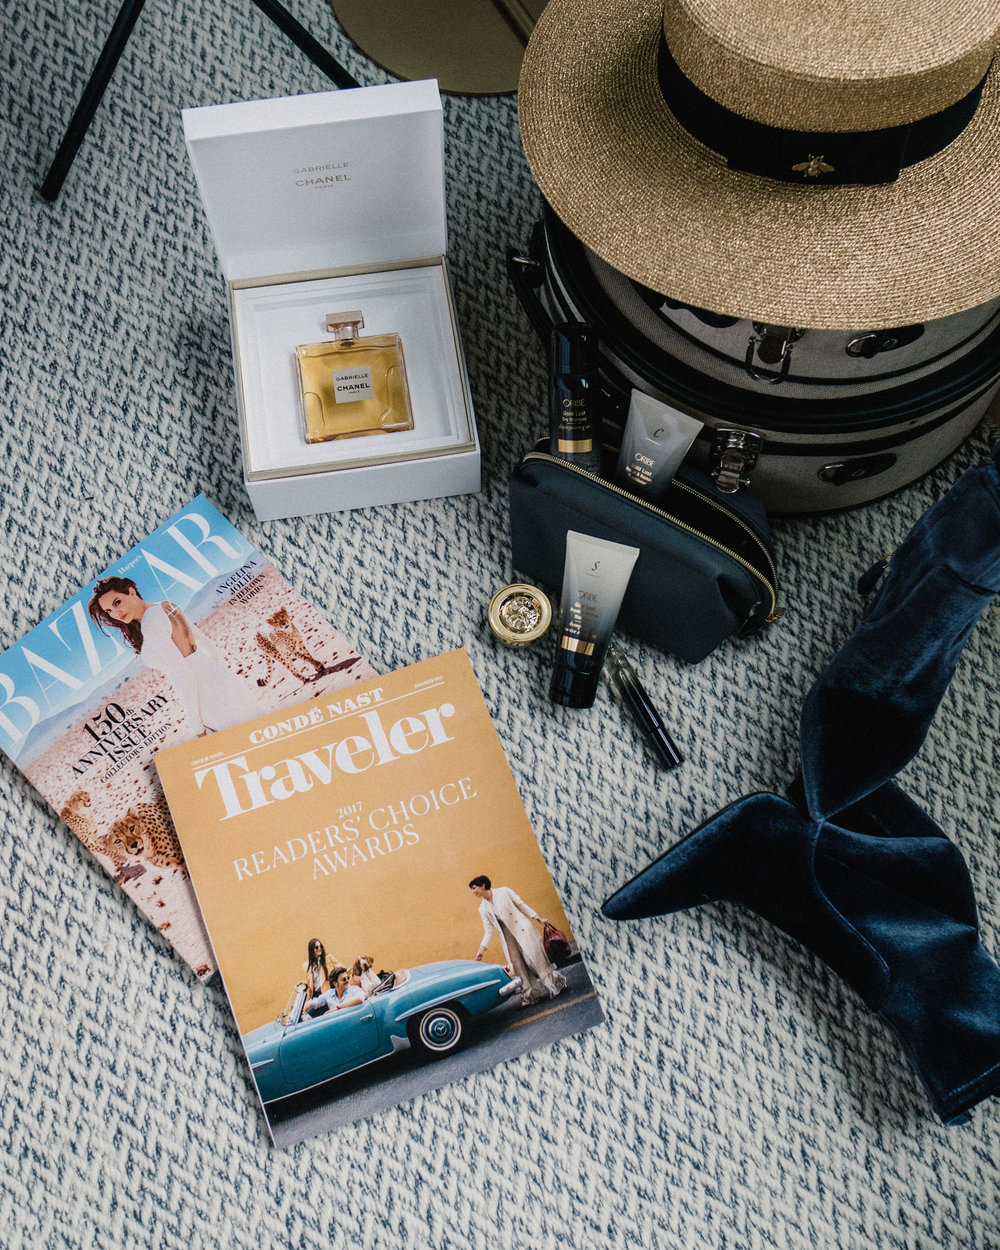 Chanel Parfum, Oribe Travel Kit, Gucci Hat, Prada Boots